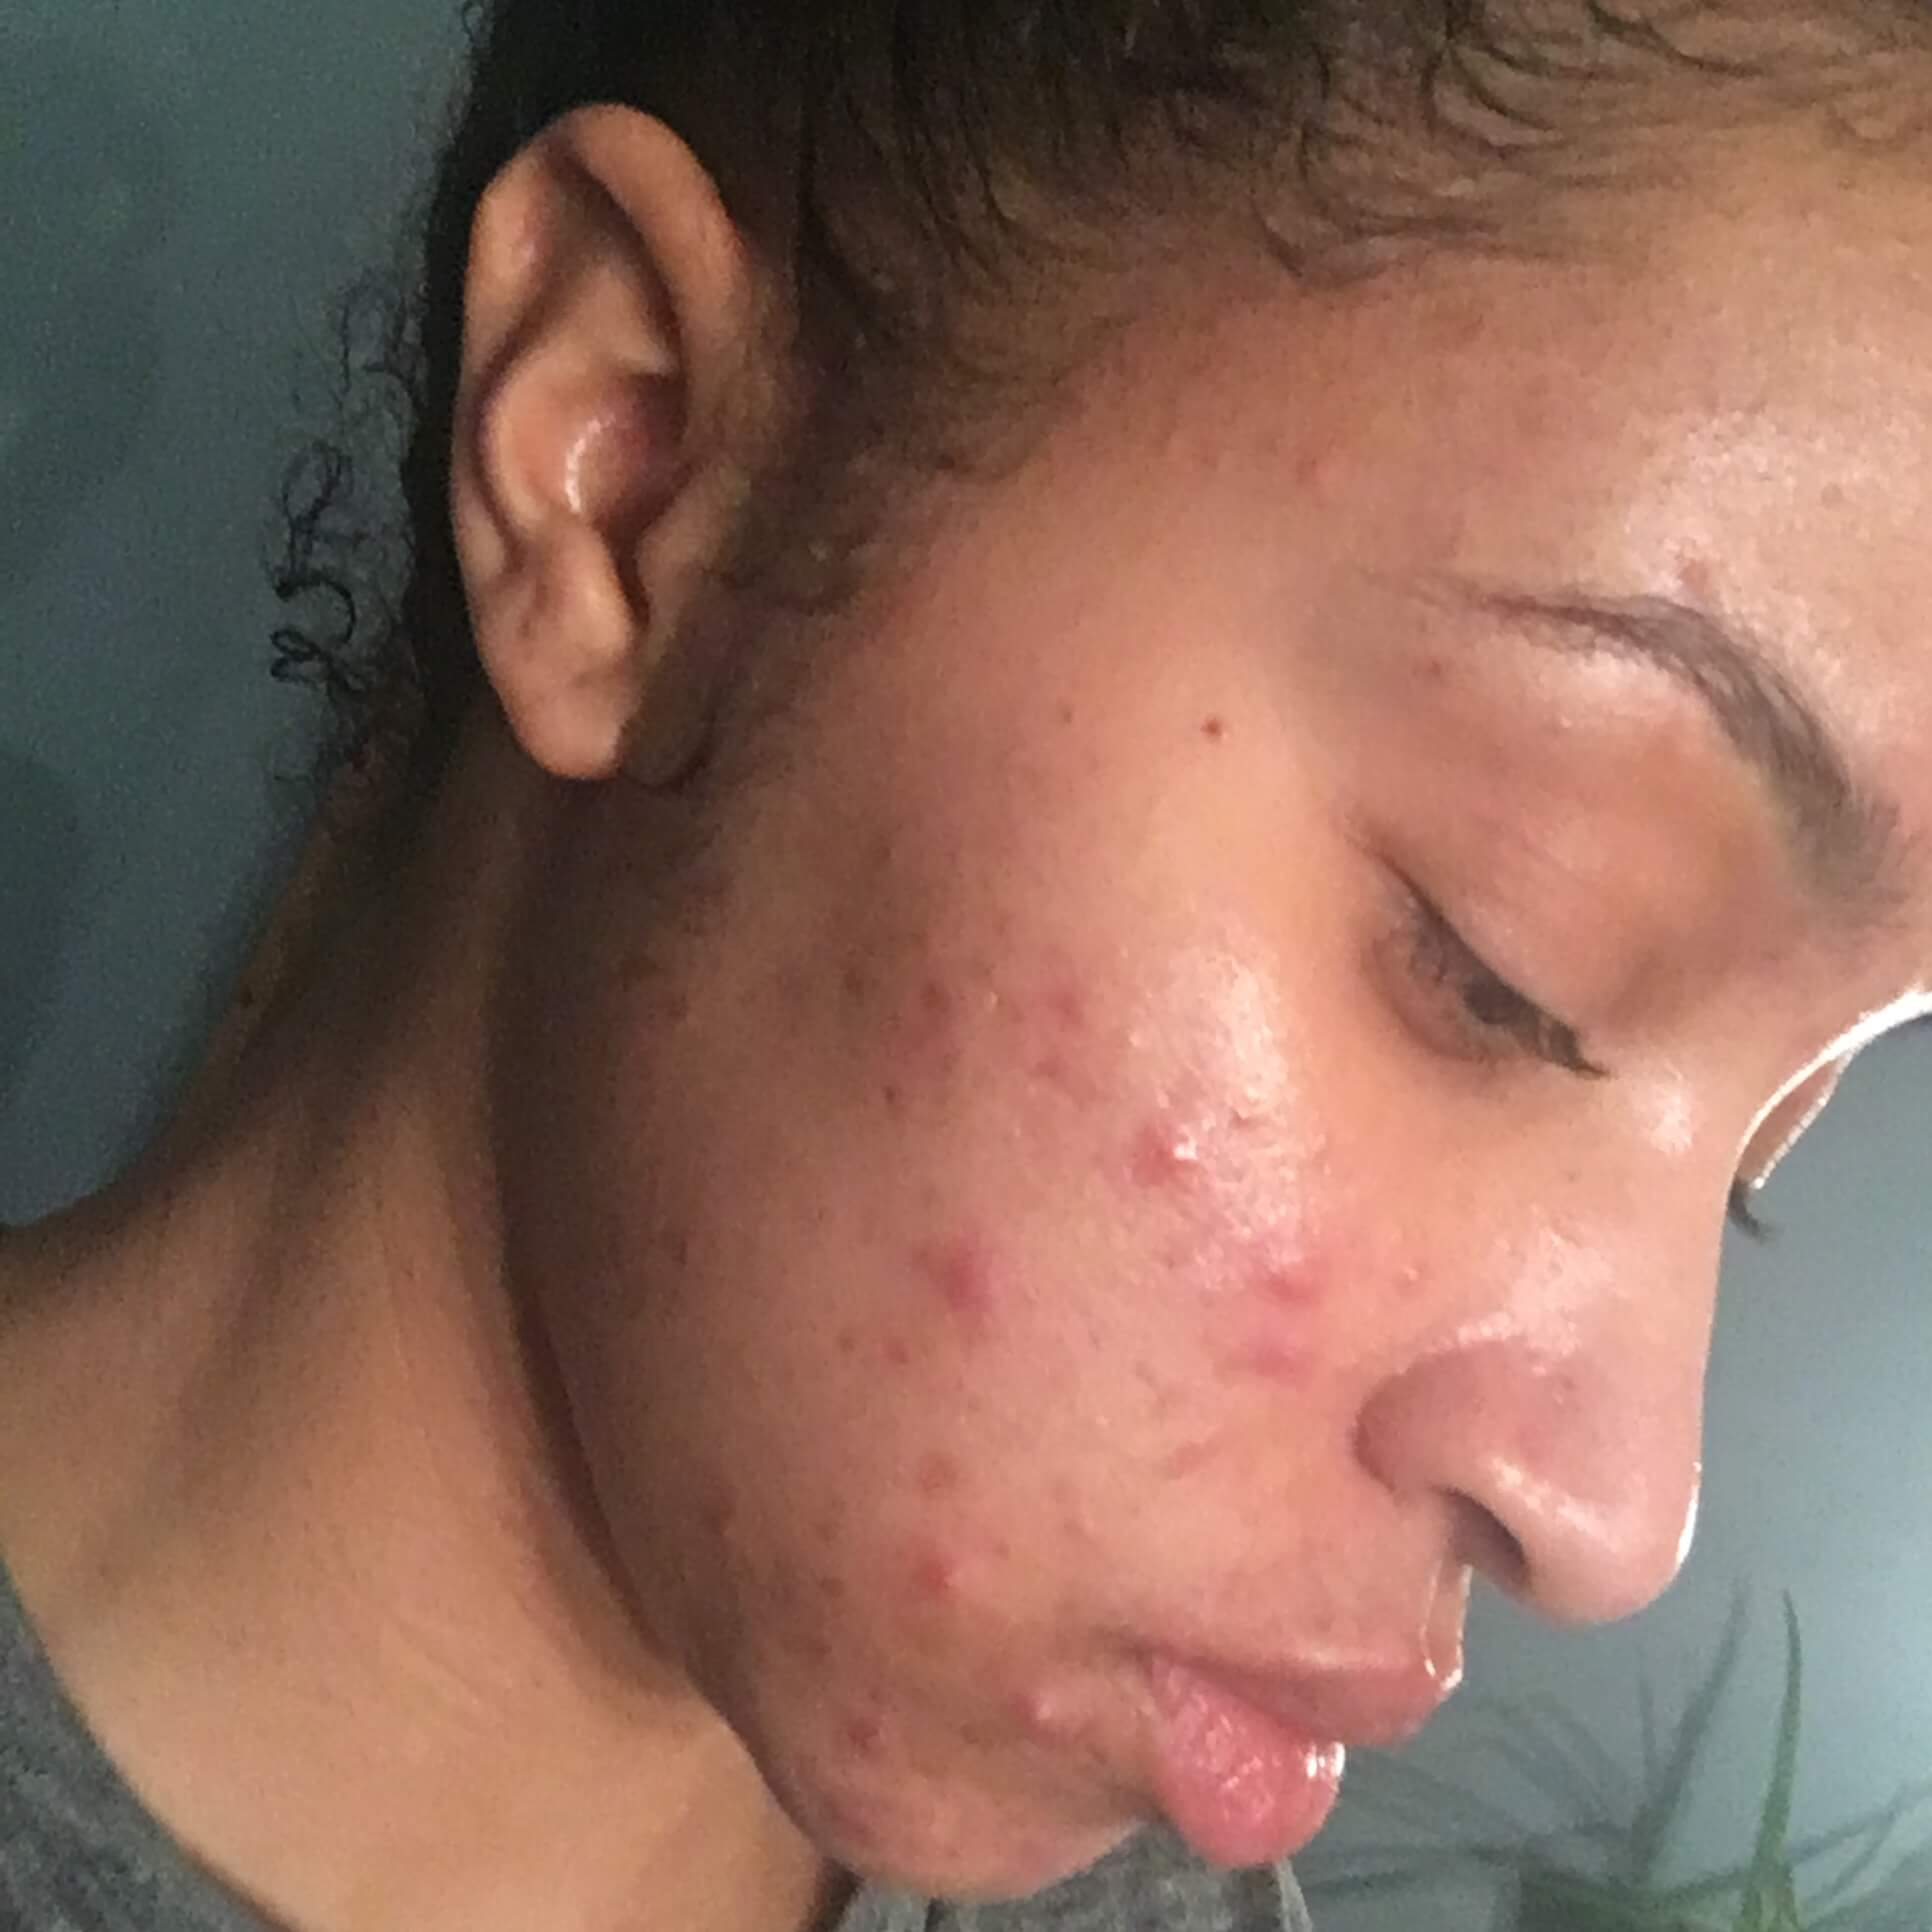 Right side of my face before Accutane, November 2016